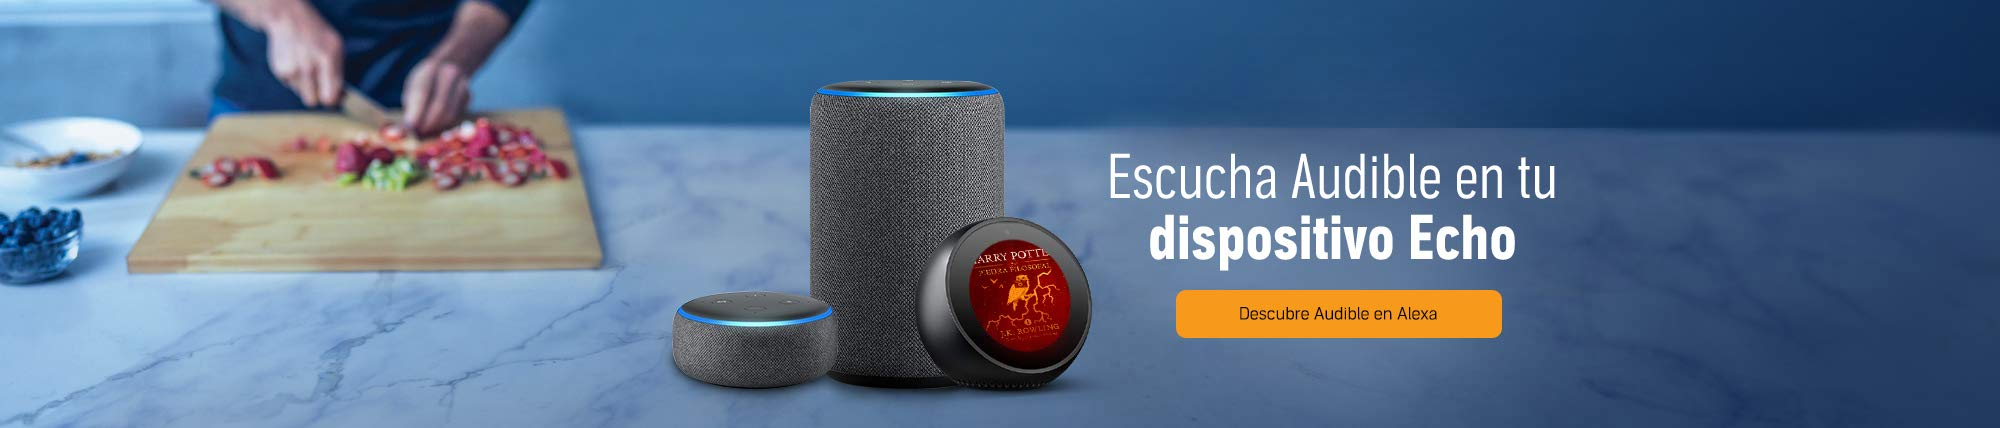 Escucha Audible en tu dispositivo Echo.